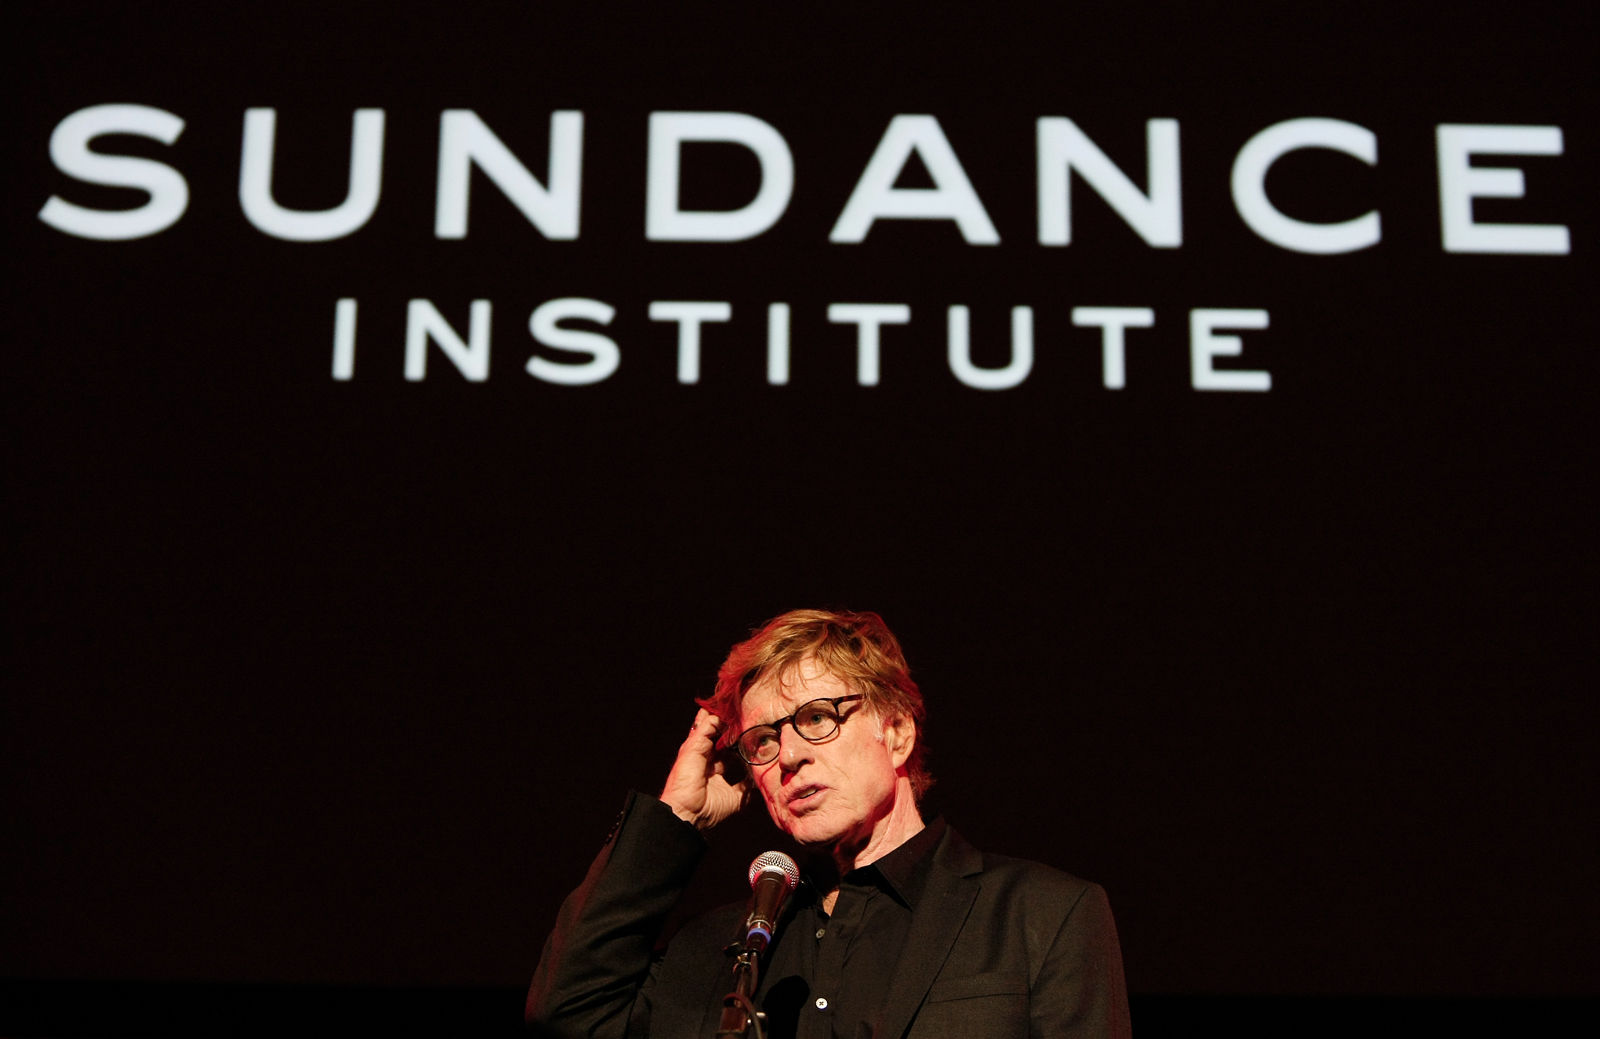 """""""A Sundance Family Celebration"""" The Sundance Institute's 26th Annual Celebration in New York Hosted by Robert Redford"""